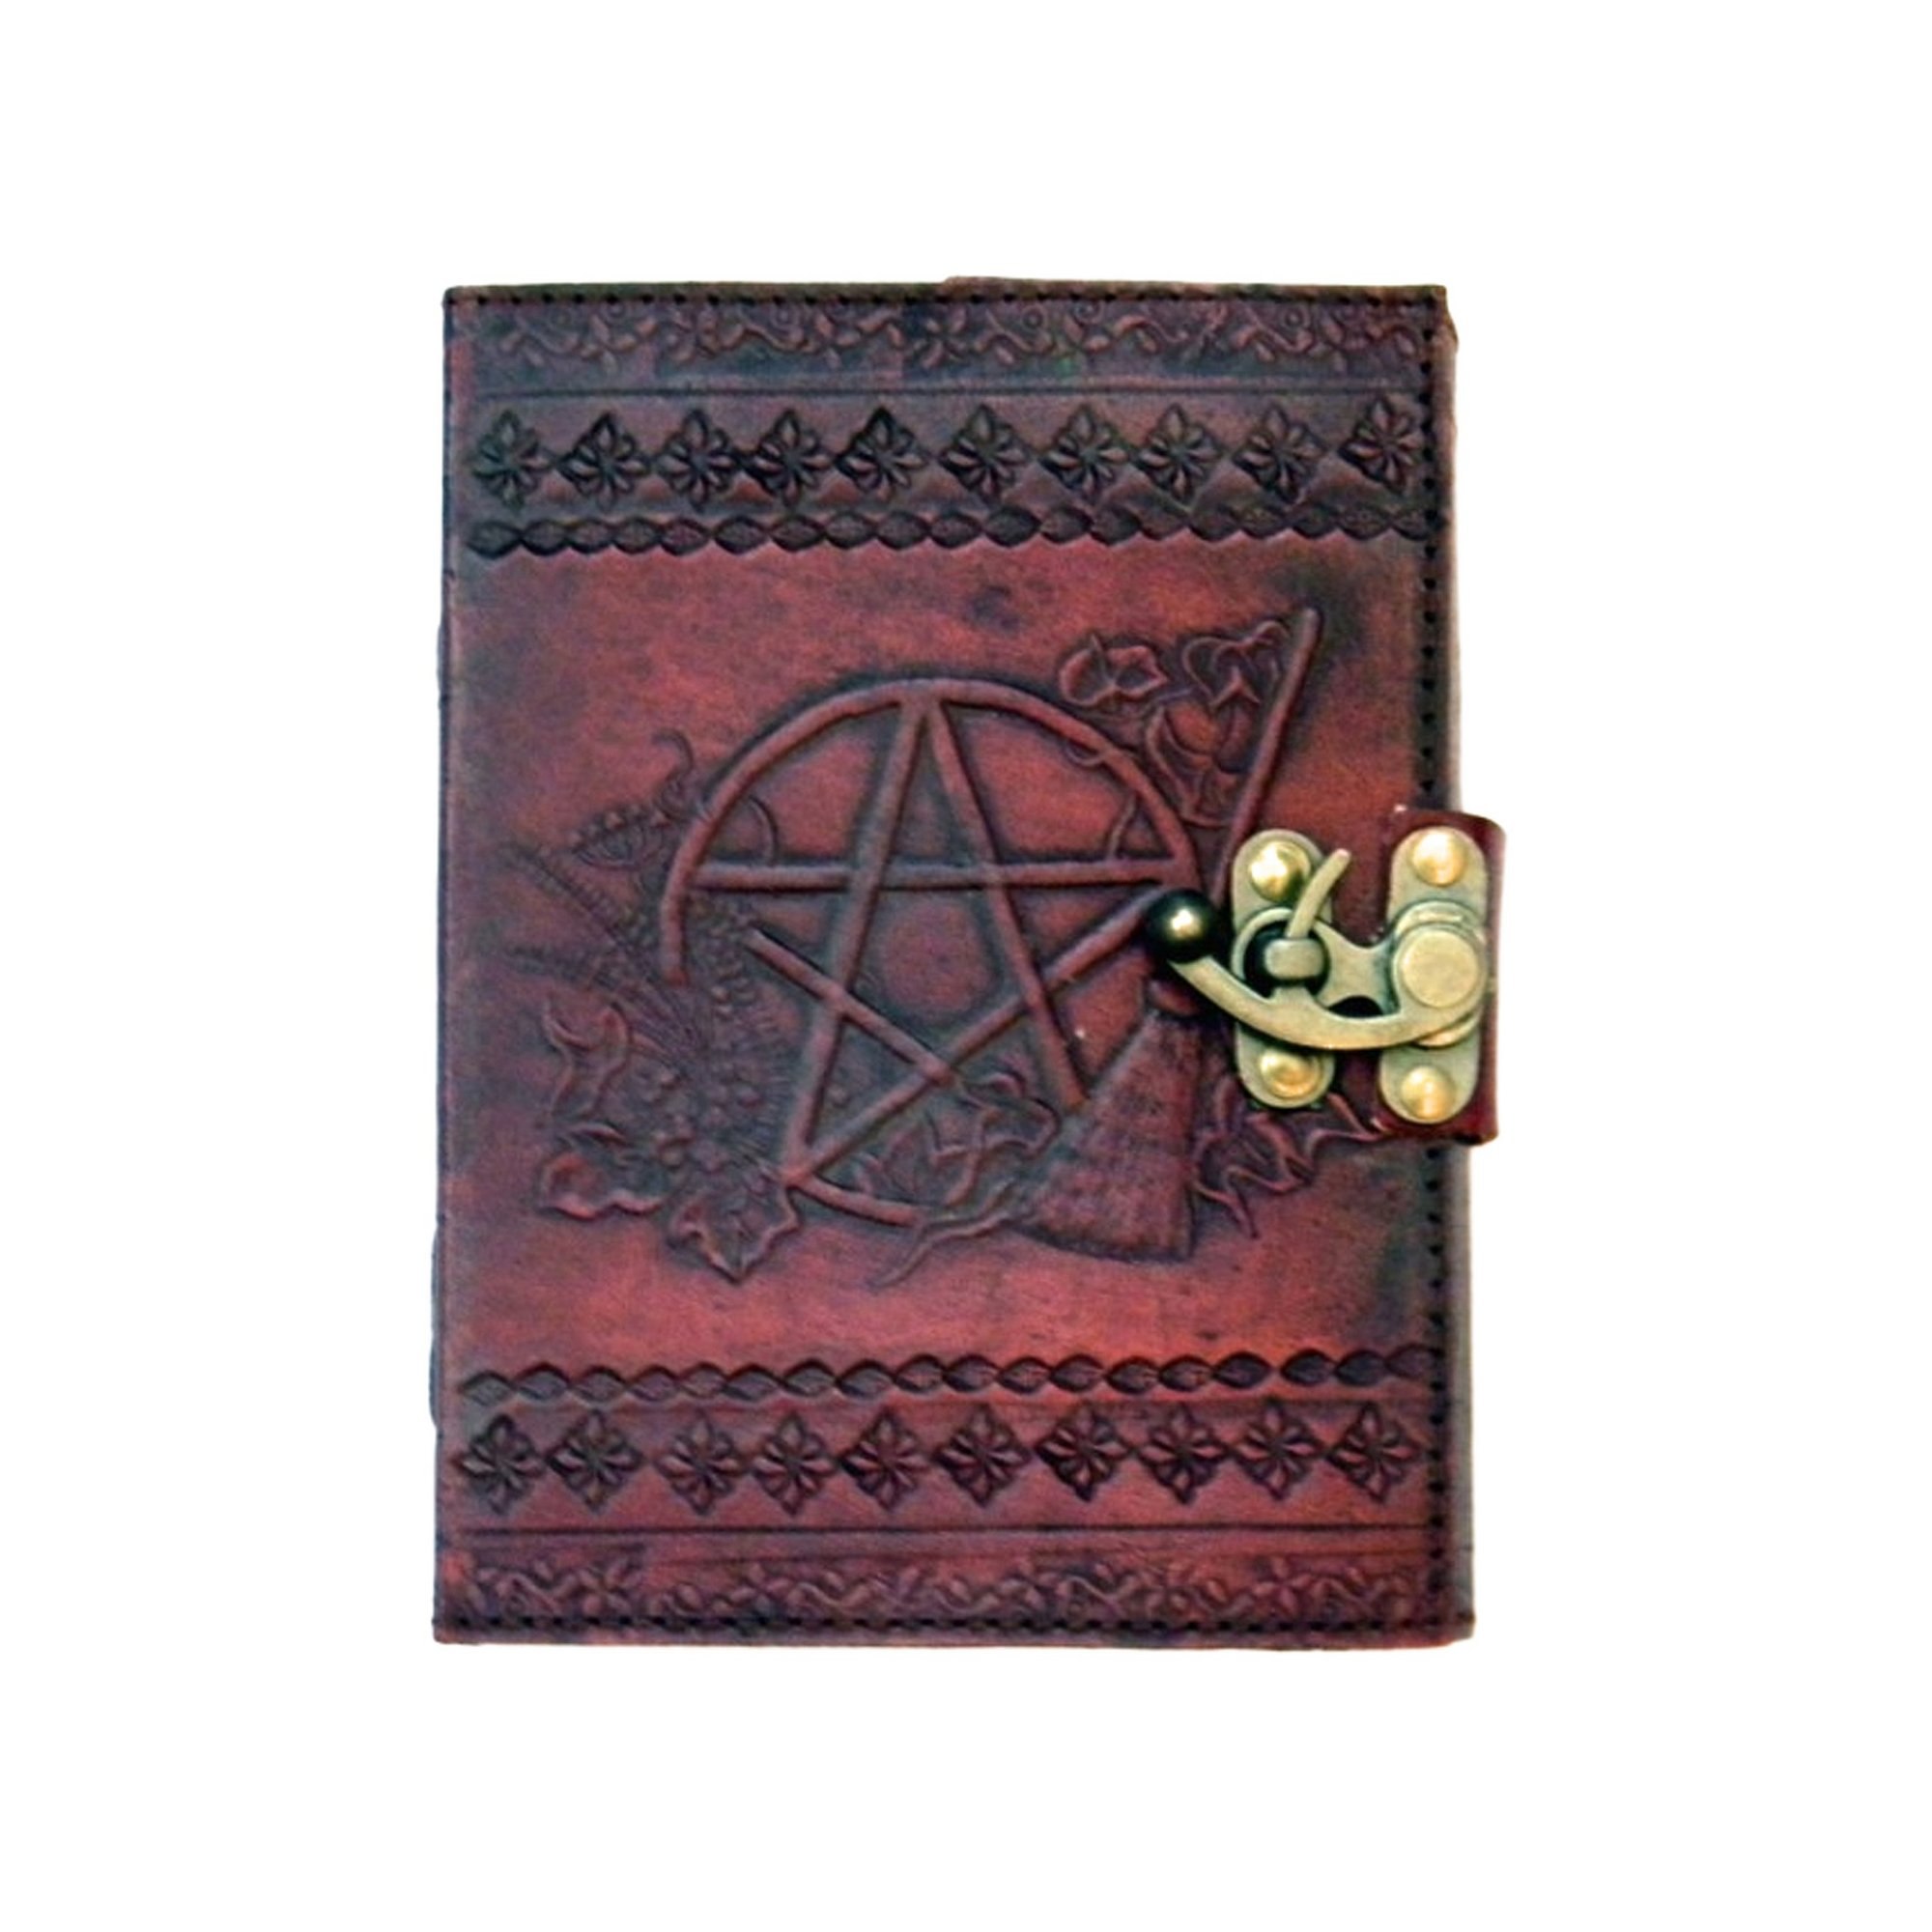 Image of Pentagram Leather Embossed Journal and Lock